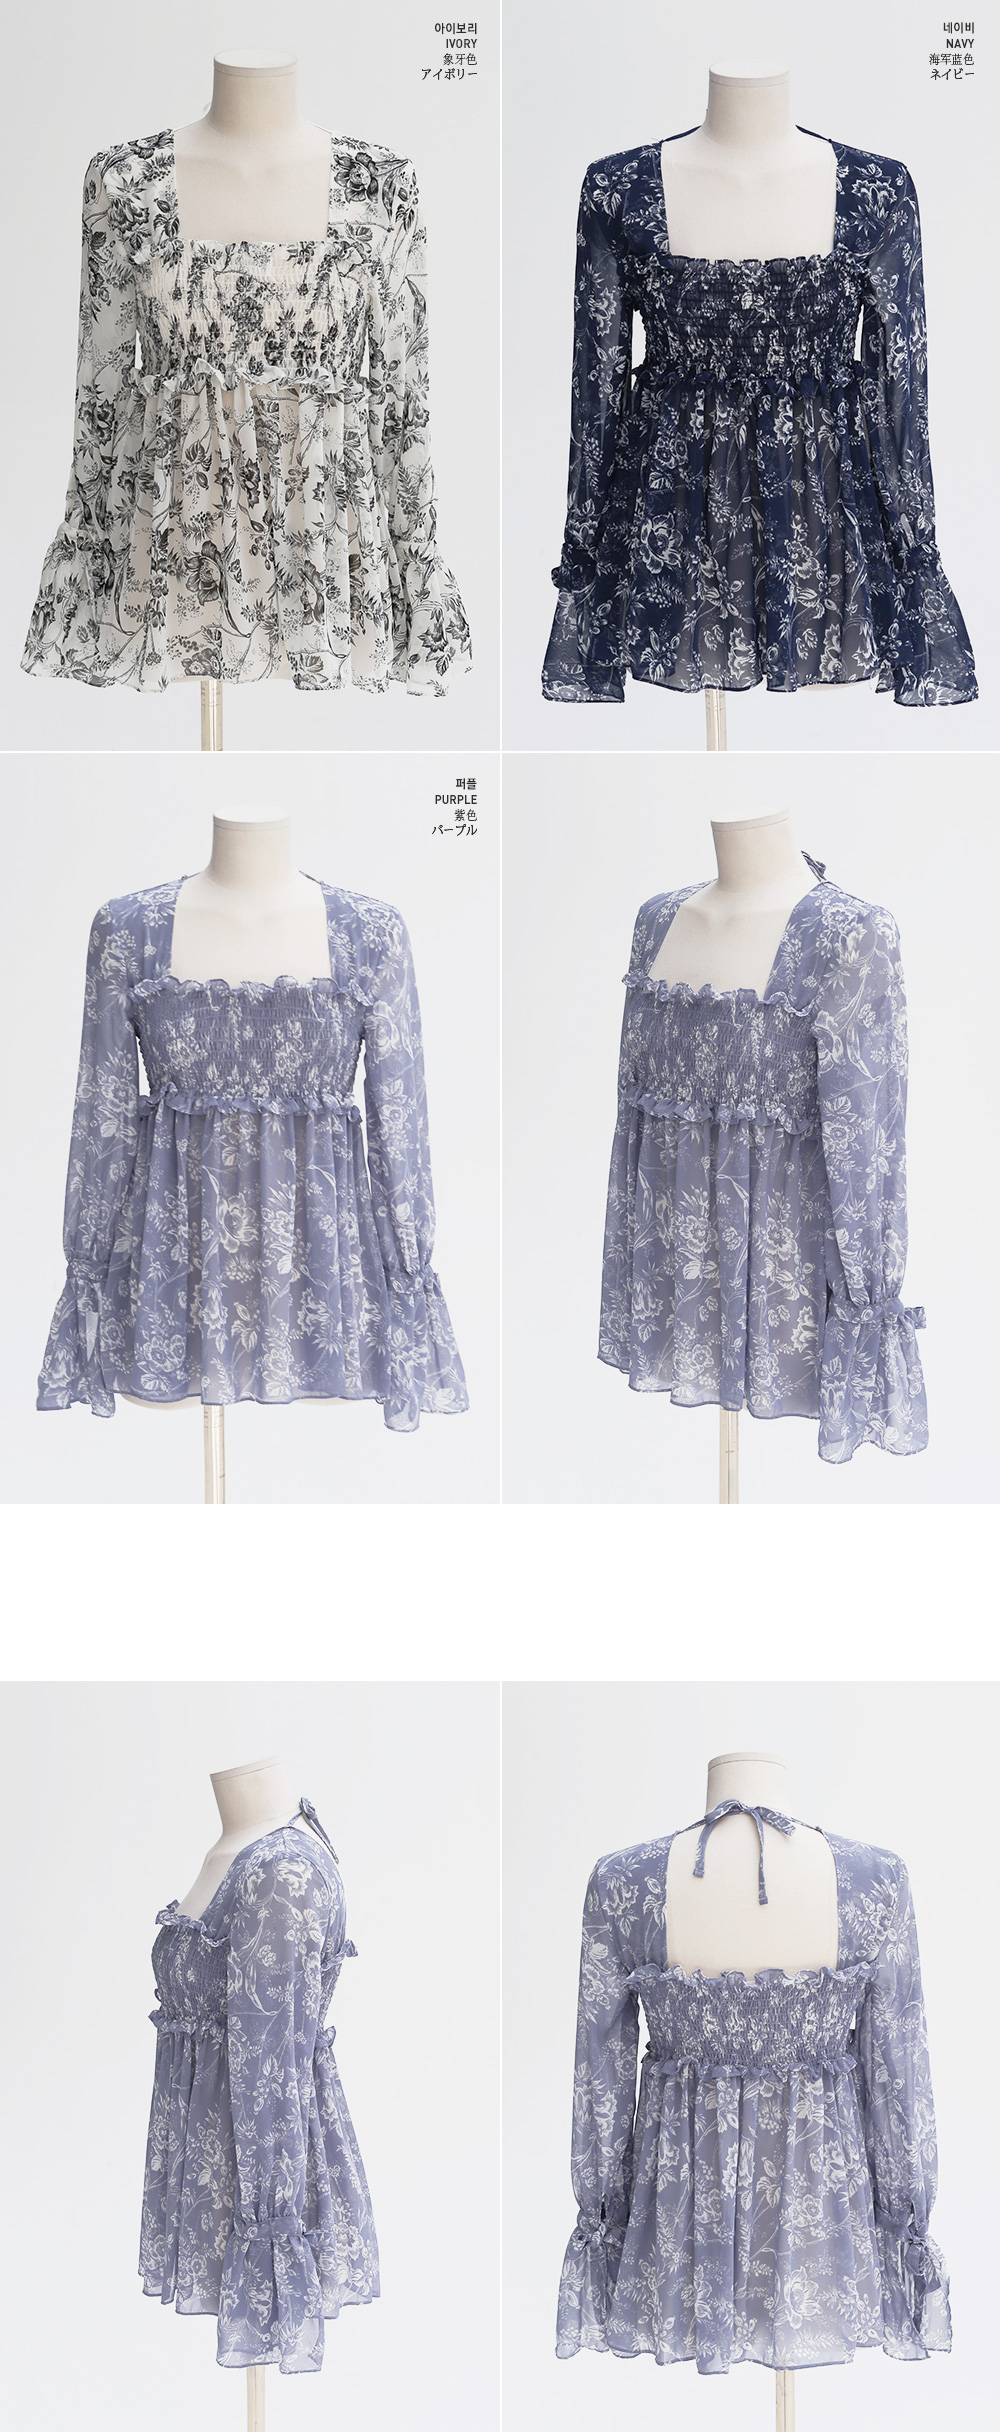 //cdn.nhanh.vn/cdn/store/29770/psCT/20181010/9451964/CHUU_Square_Neck_Line_With_Frilled_Blouse_(20).jpg